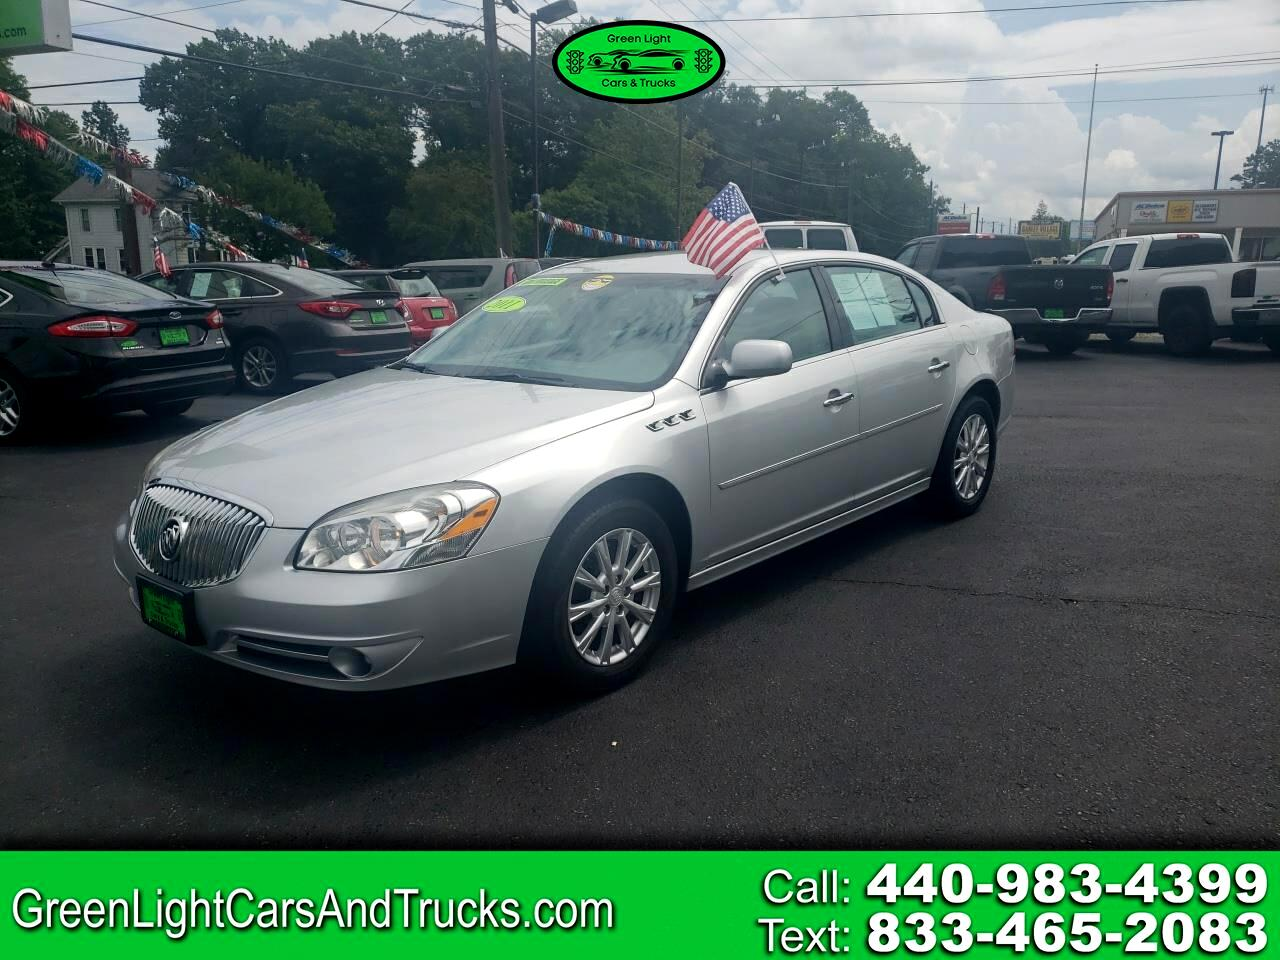 Buick Lucerne 4dr Sdn CX 2011